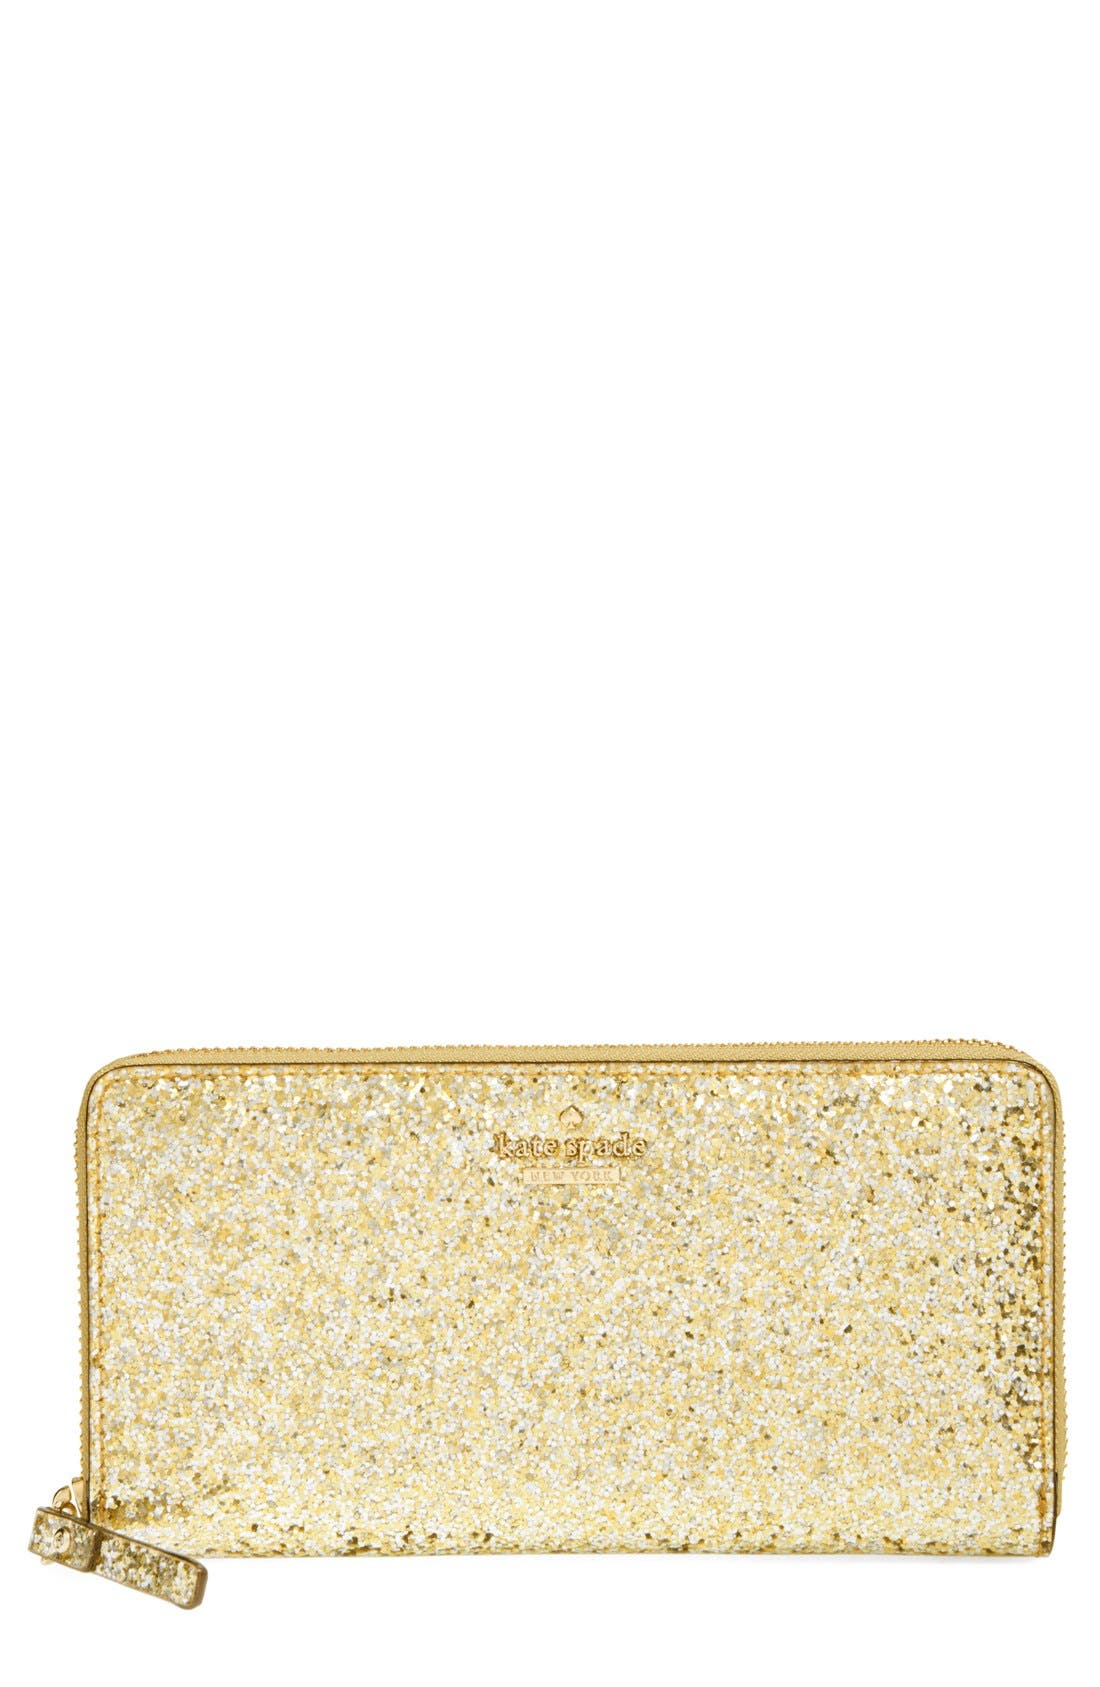 Main Image - kate spade new york 'glitter bug - lacey' zip around wallet